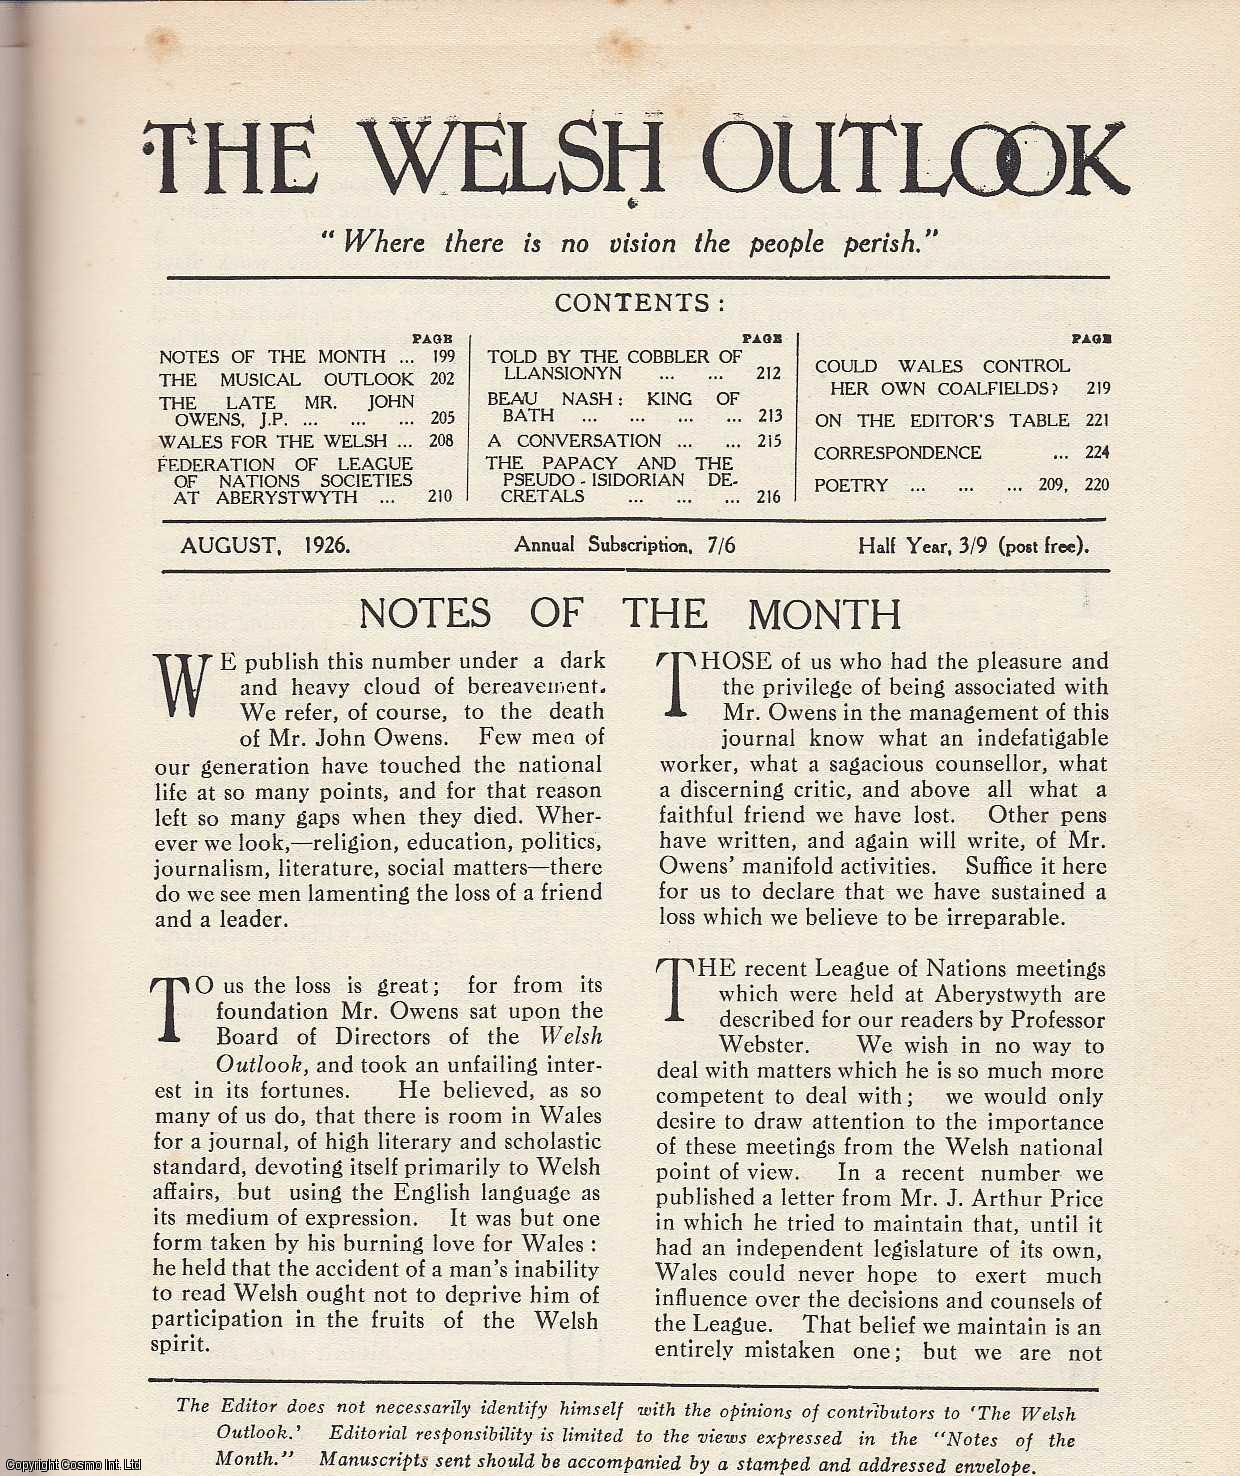 THOMAS JONES (EDITOR) - The Welsh Outlook. A Monthly Journal of National Social Progress. August, 1926. Contains; The Musical Outlook by Sir Walford Davies; The Late Mr. John Owens, J.P. by R.R. Williams; Wales for The Welsh: What Then? by E. Ebrard Rees; Federation of League of Nations Societies at Aberystwyth by Professor Webster; Told by The Cobbler of Llansionyn by R. Lloyd Hughes; Beau Nash: King of Bath by Idris Williams; A Conversation: Between Mr. Love-The-Lord and Mr. Moralman, of Chalfont St. Giles by Elined Kotschnig-Prys; The Papacy and The Pseudo-Isidorian Decretals by J.E. de Hirsch-Davies; Could Wales Control Her Own Coalfields: A Nationalist Viewpoint by W. Tudor Davies. An original article from the Welsh Outlook magazine, 1926.